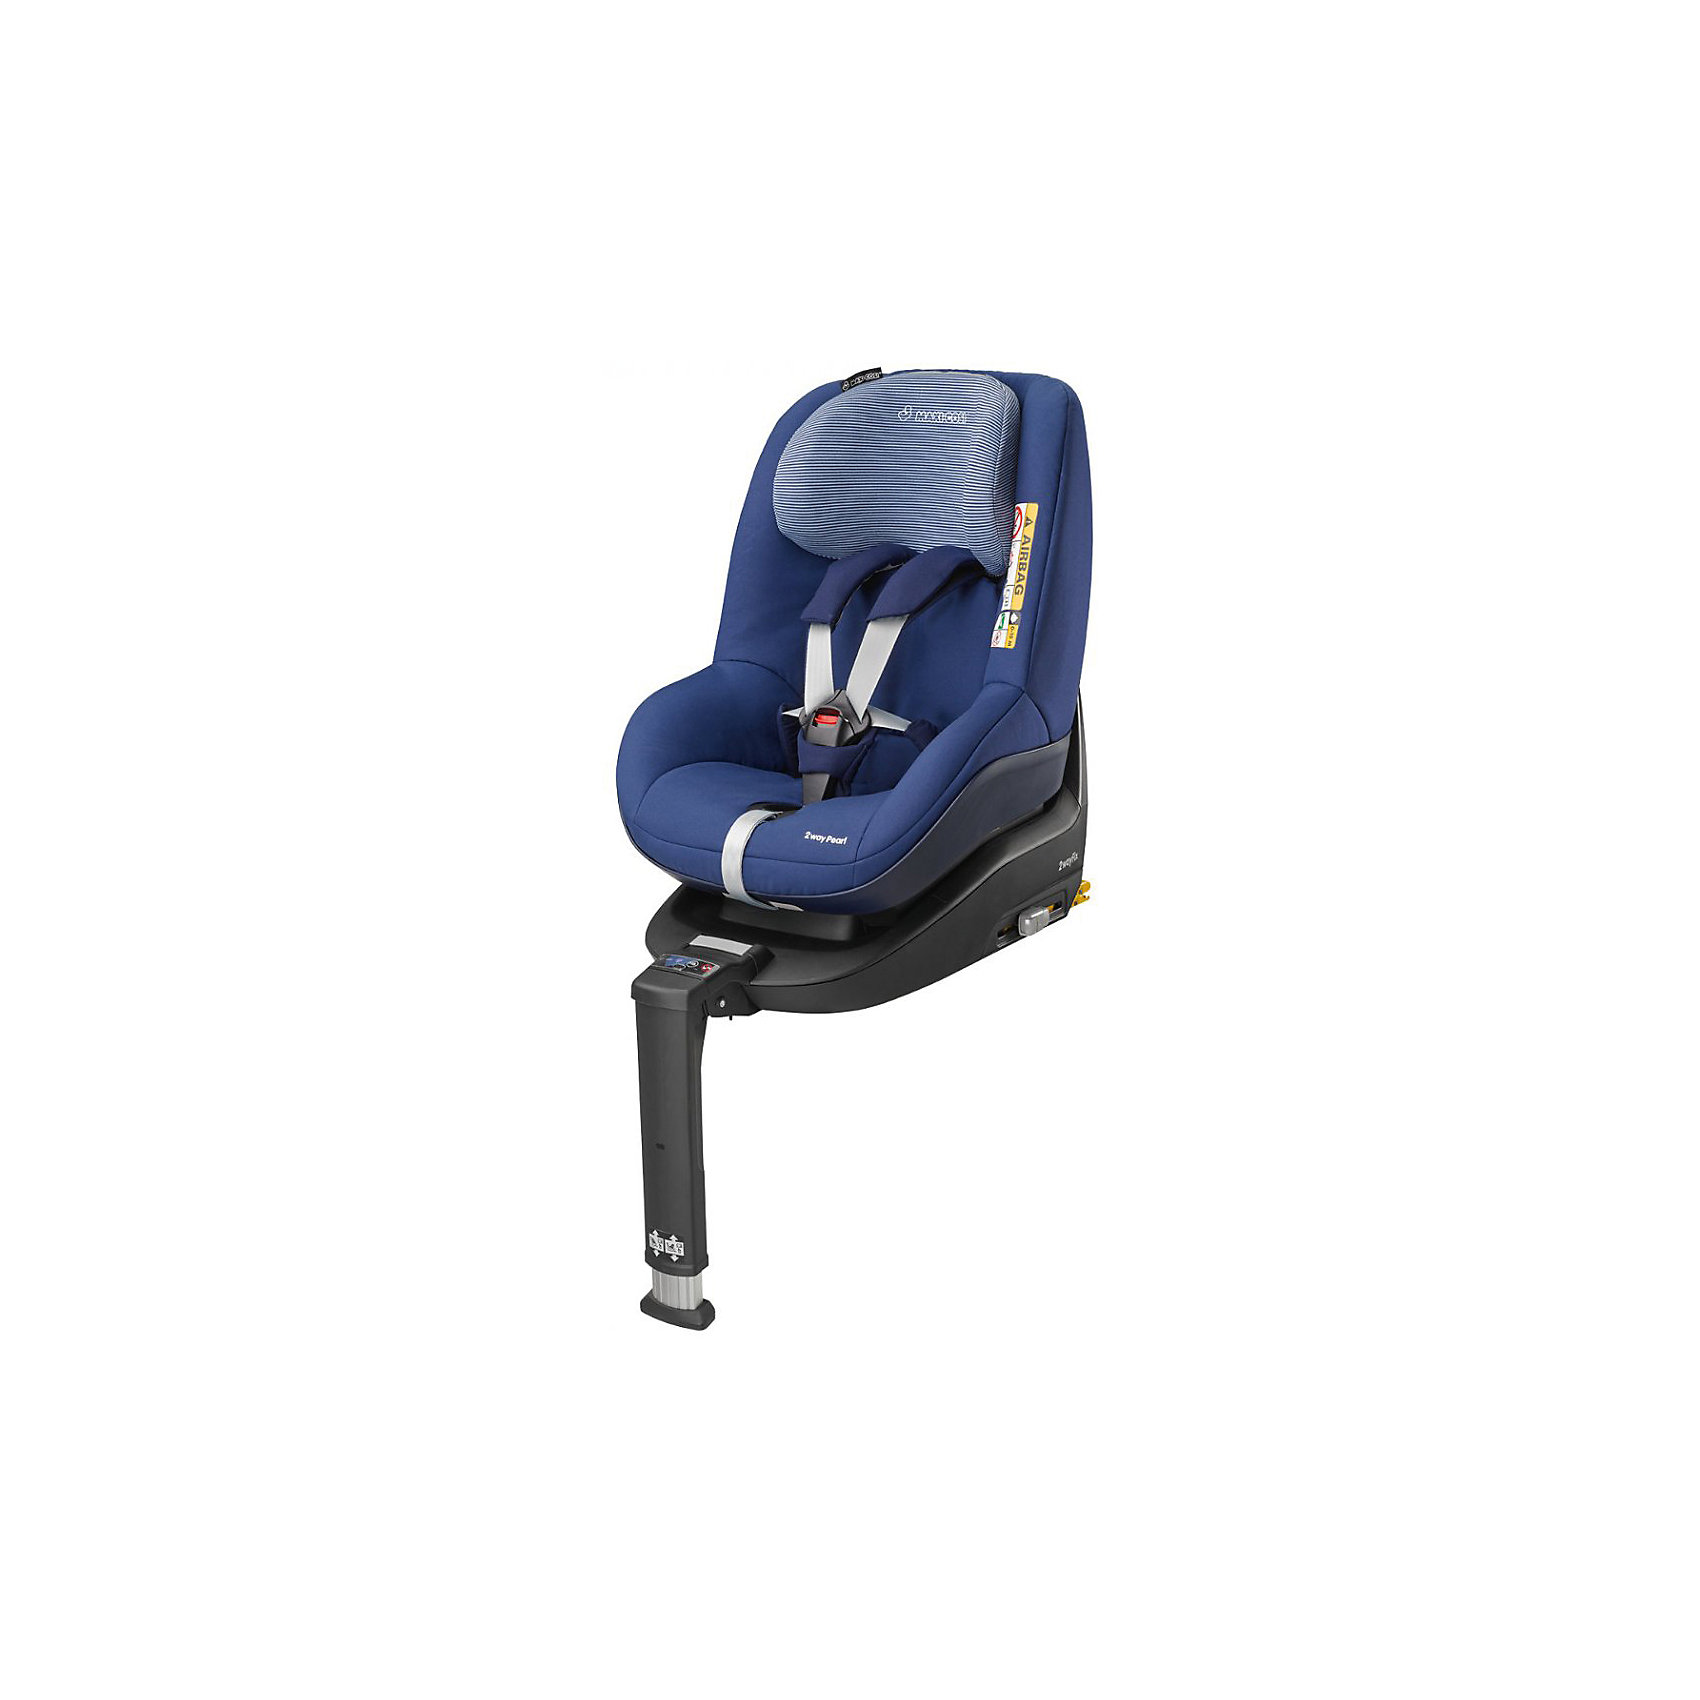 Автокресло 2wayPearl 9-18 кг., Maxi-Cosi, River Blue